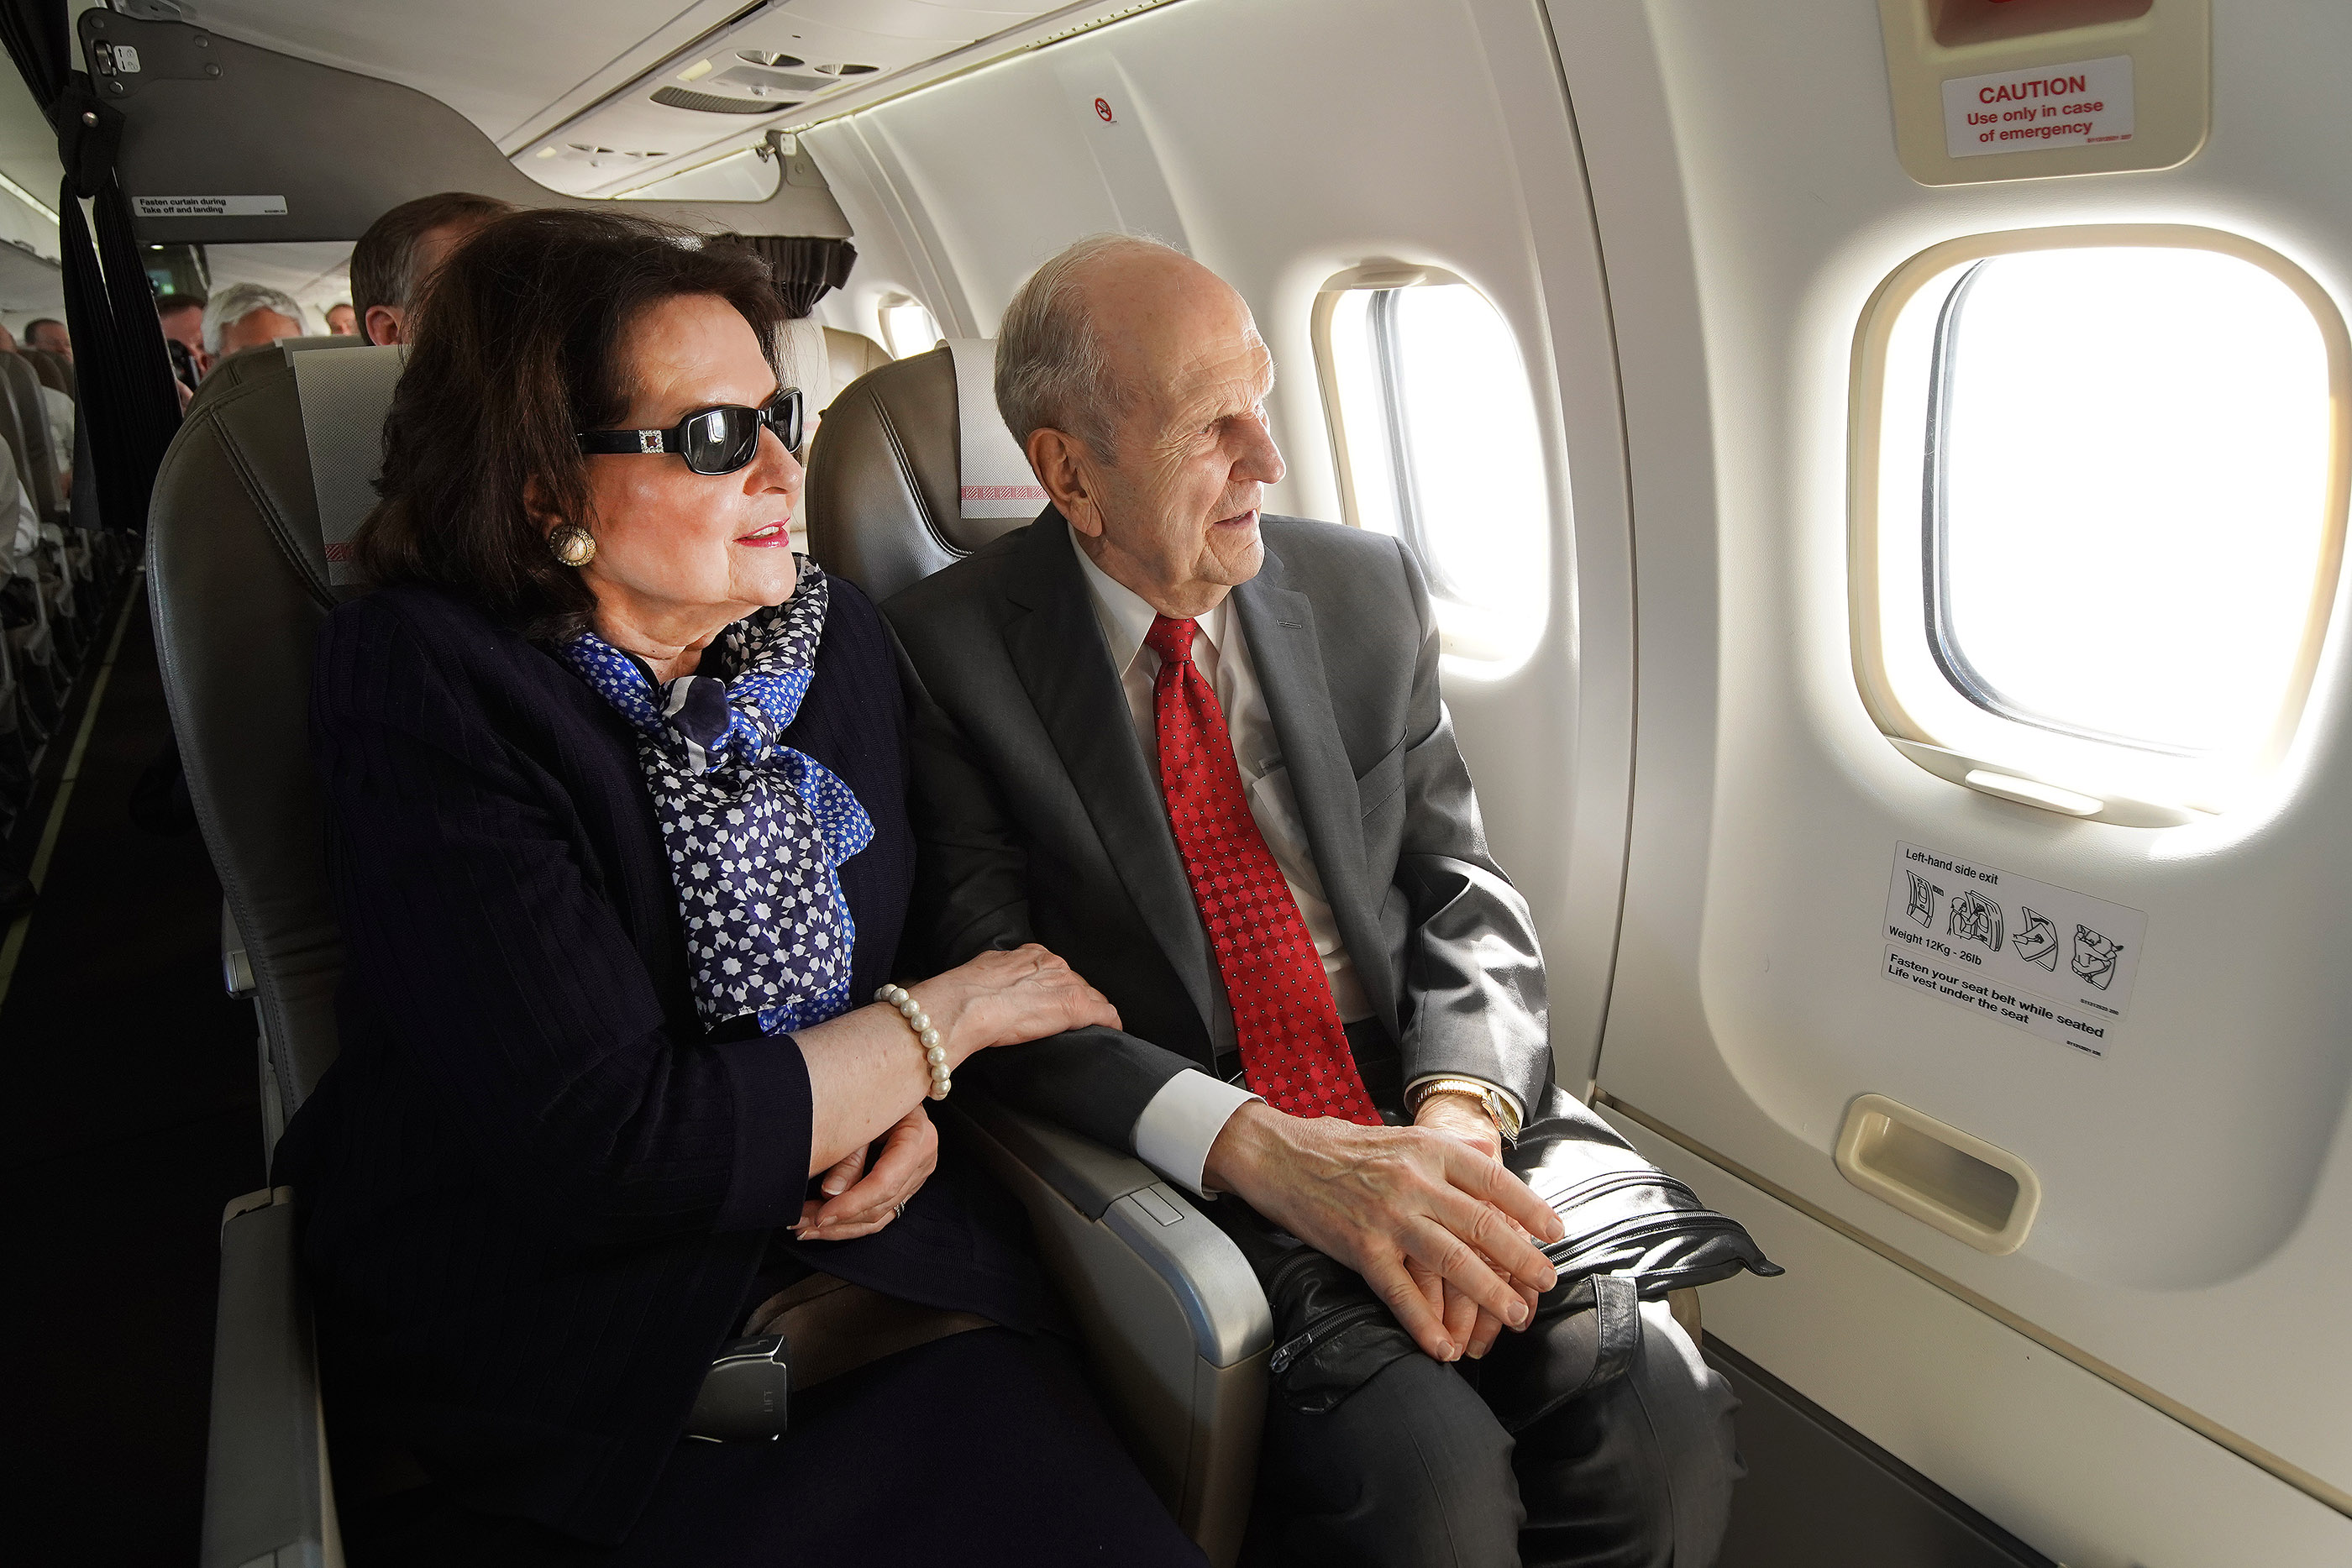 President Russell M. Nelson of The Church of Jesus Christ of Latter-day Saints and his wife, Sister Wendy Nelson, look out of the window while flying to a devotional in Nausori, Fiji on May 22, 2019.